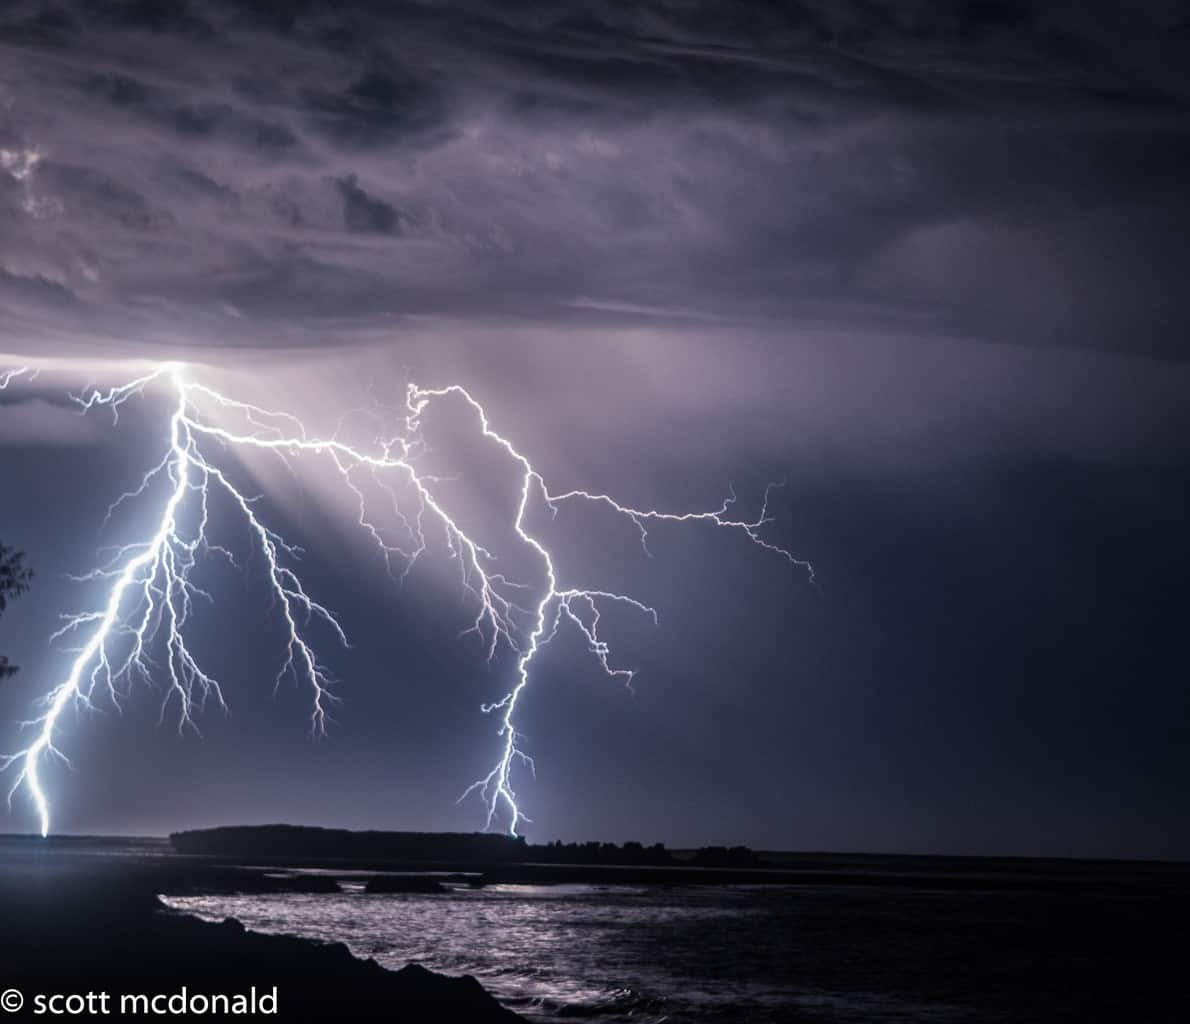 nice active storm passing my home town in western australia a few nights ago